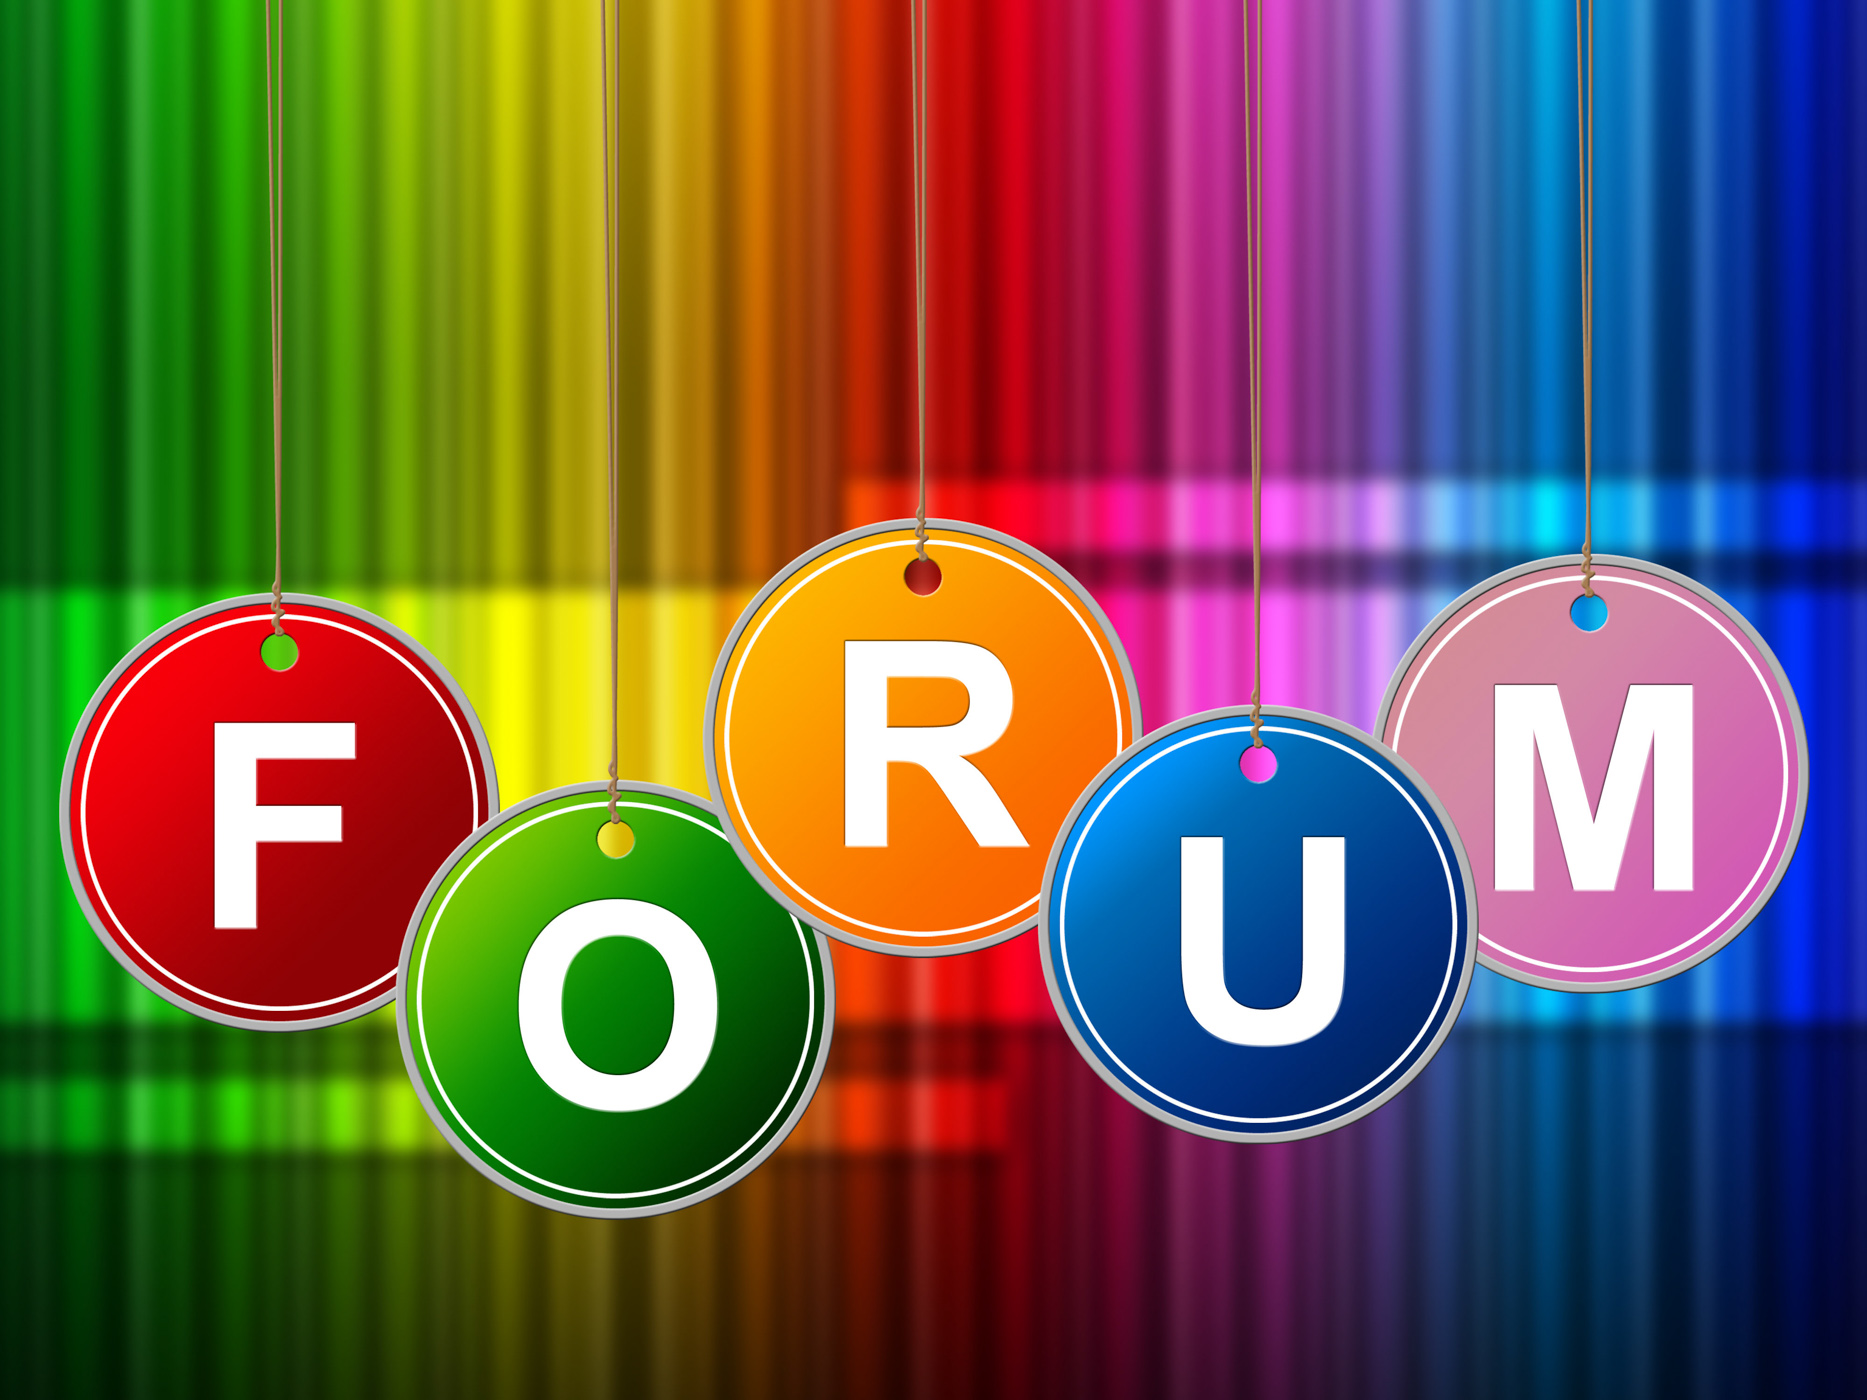 Forums Forum Means Social Media And Site, Chat, Communication, Community, Conference, HQ Photo